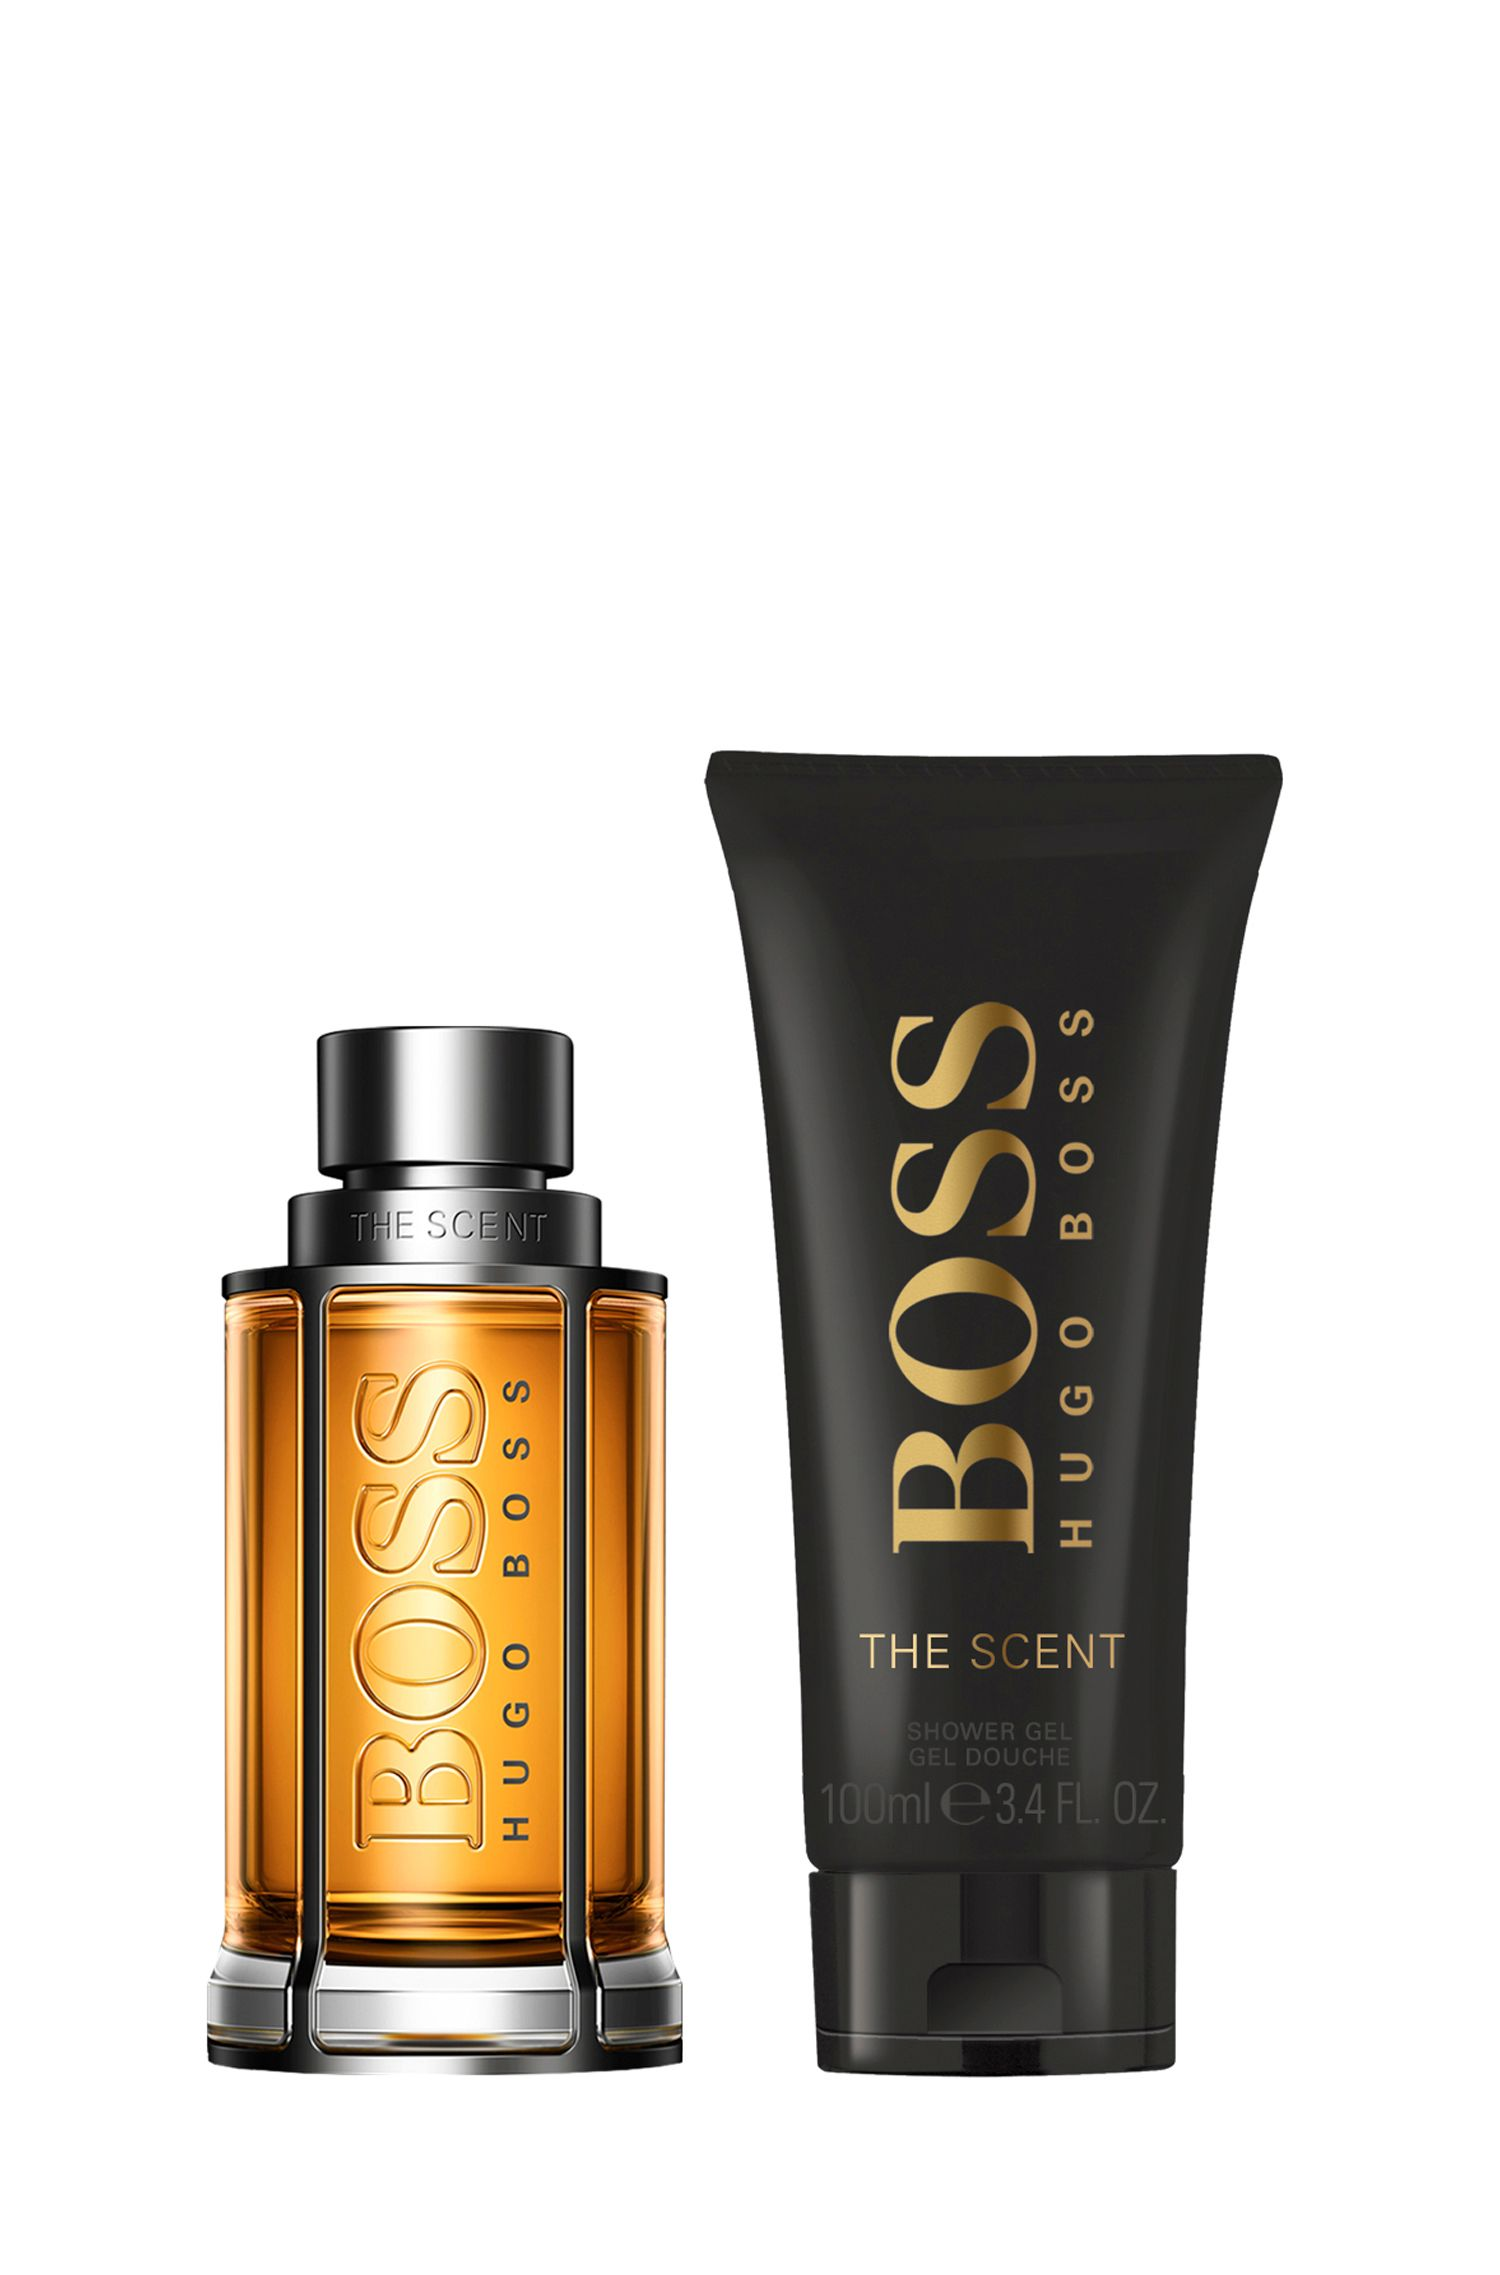 BOSS The Scent fragrance and shower gel gift set, Assorted-Pre-Pack